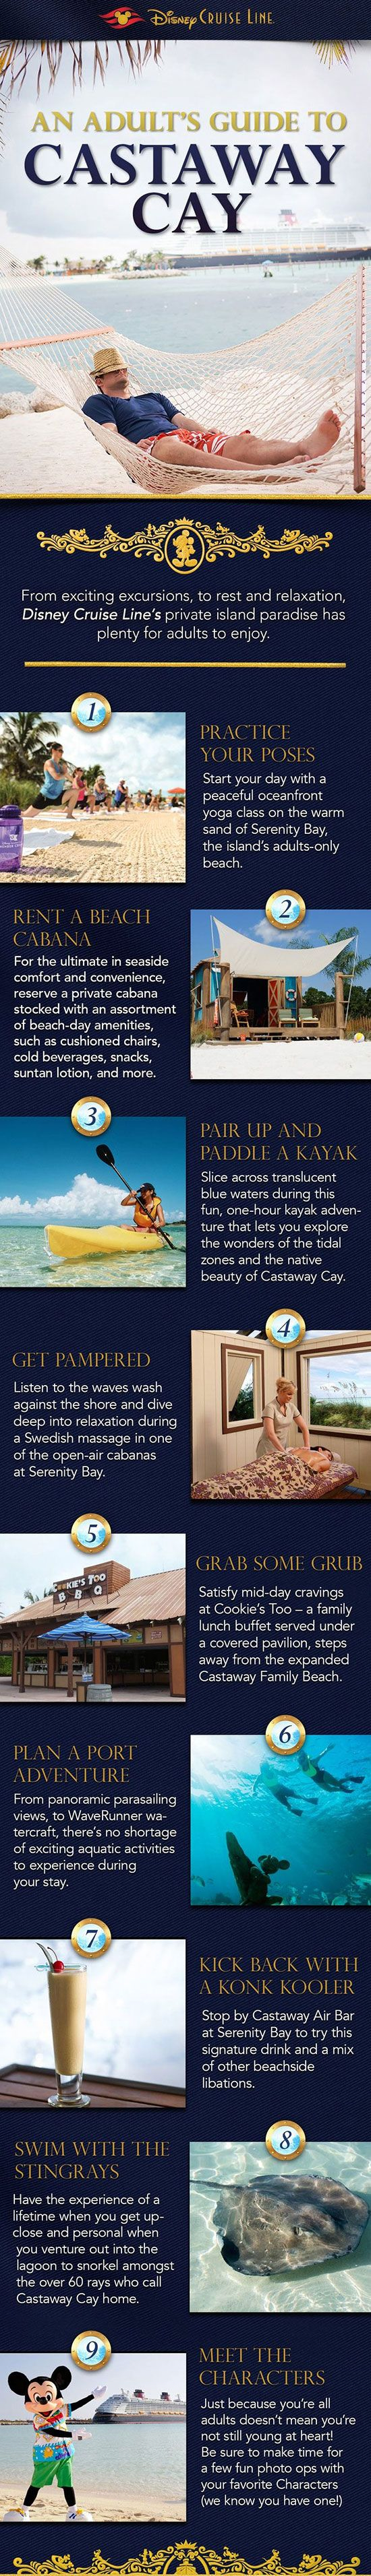 Home contact guides booking - Adult S Guide To Castaway Cay With Disney Cruise Line Contact Me To Book Your Next